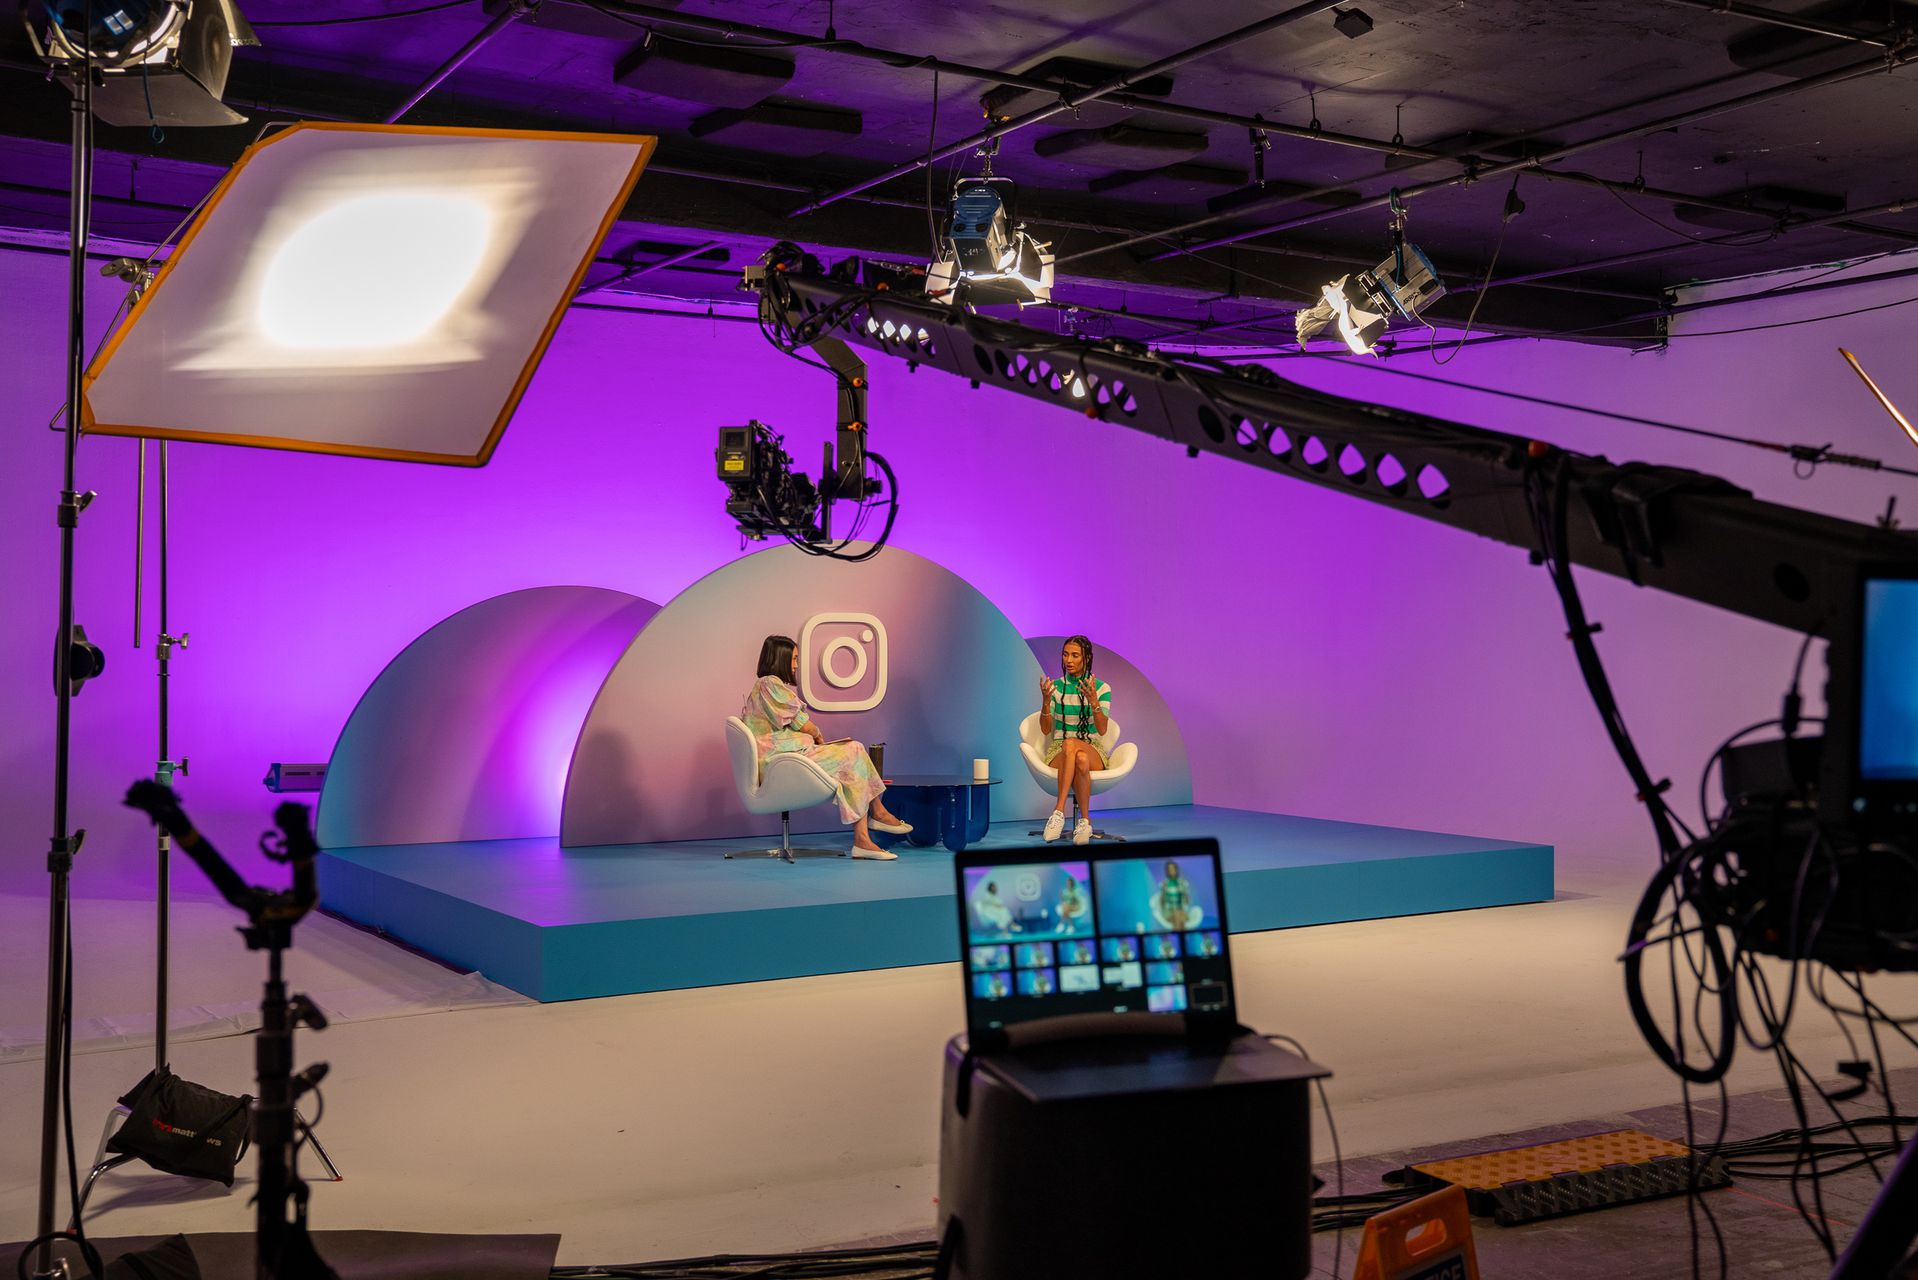 A stage with two women sitting being filmed by a camera